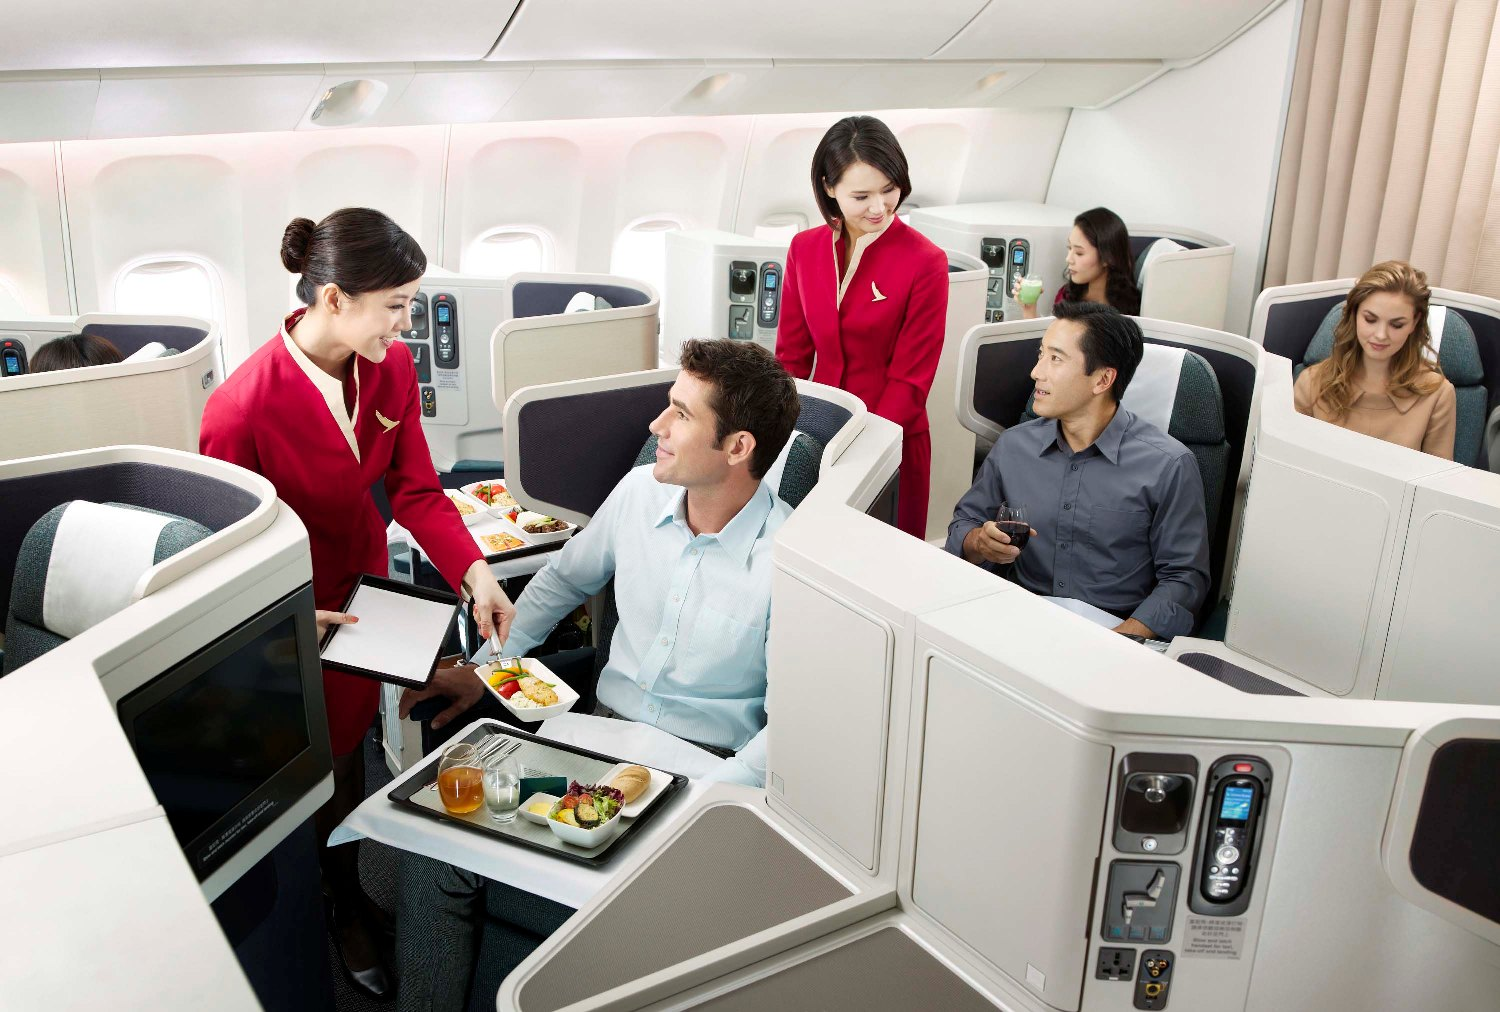 Cathay_pacific_business class_2012